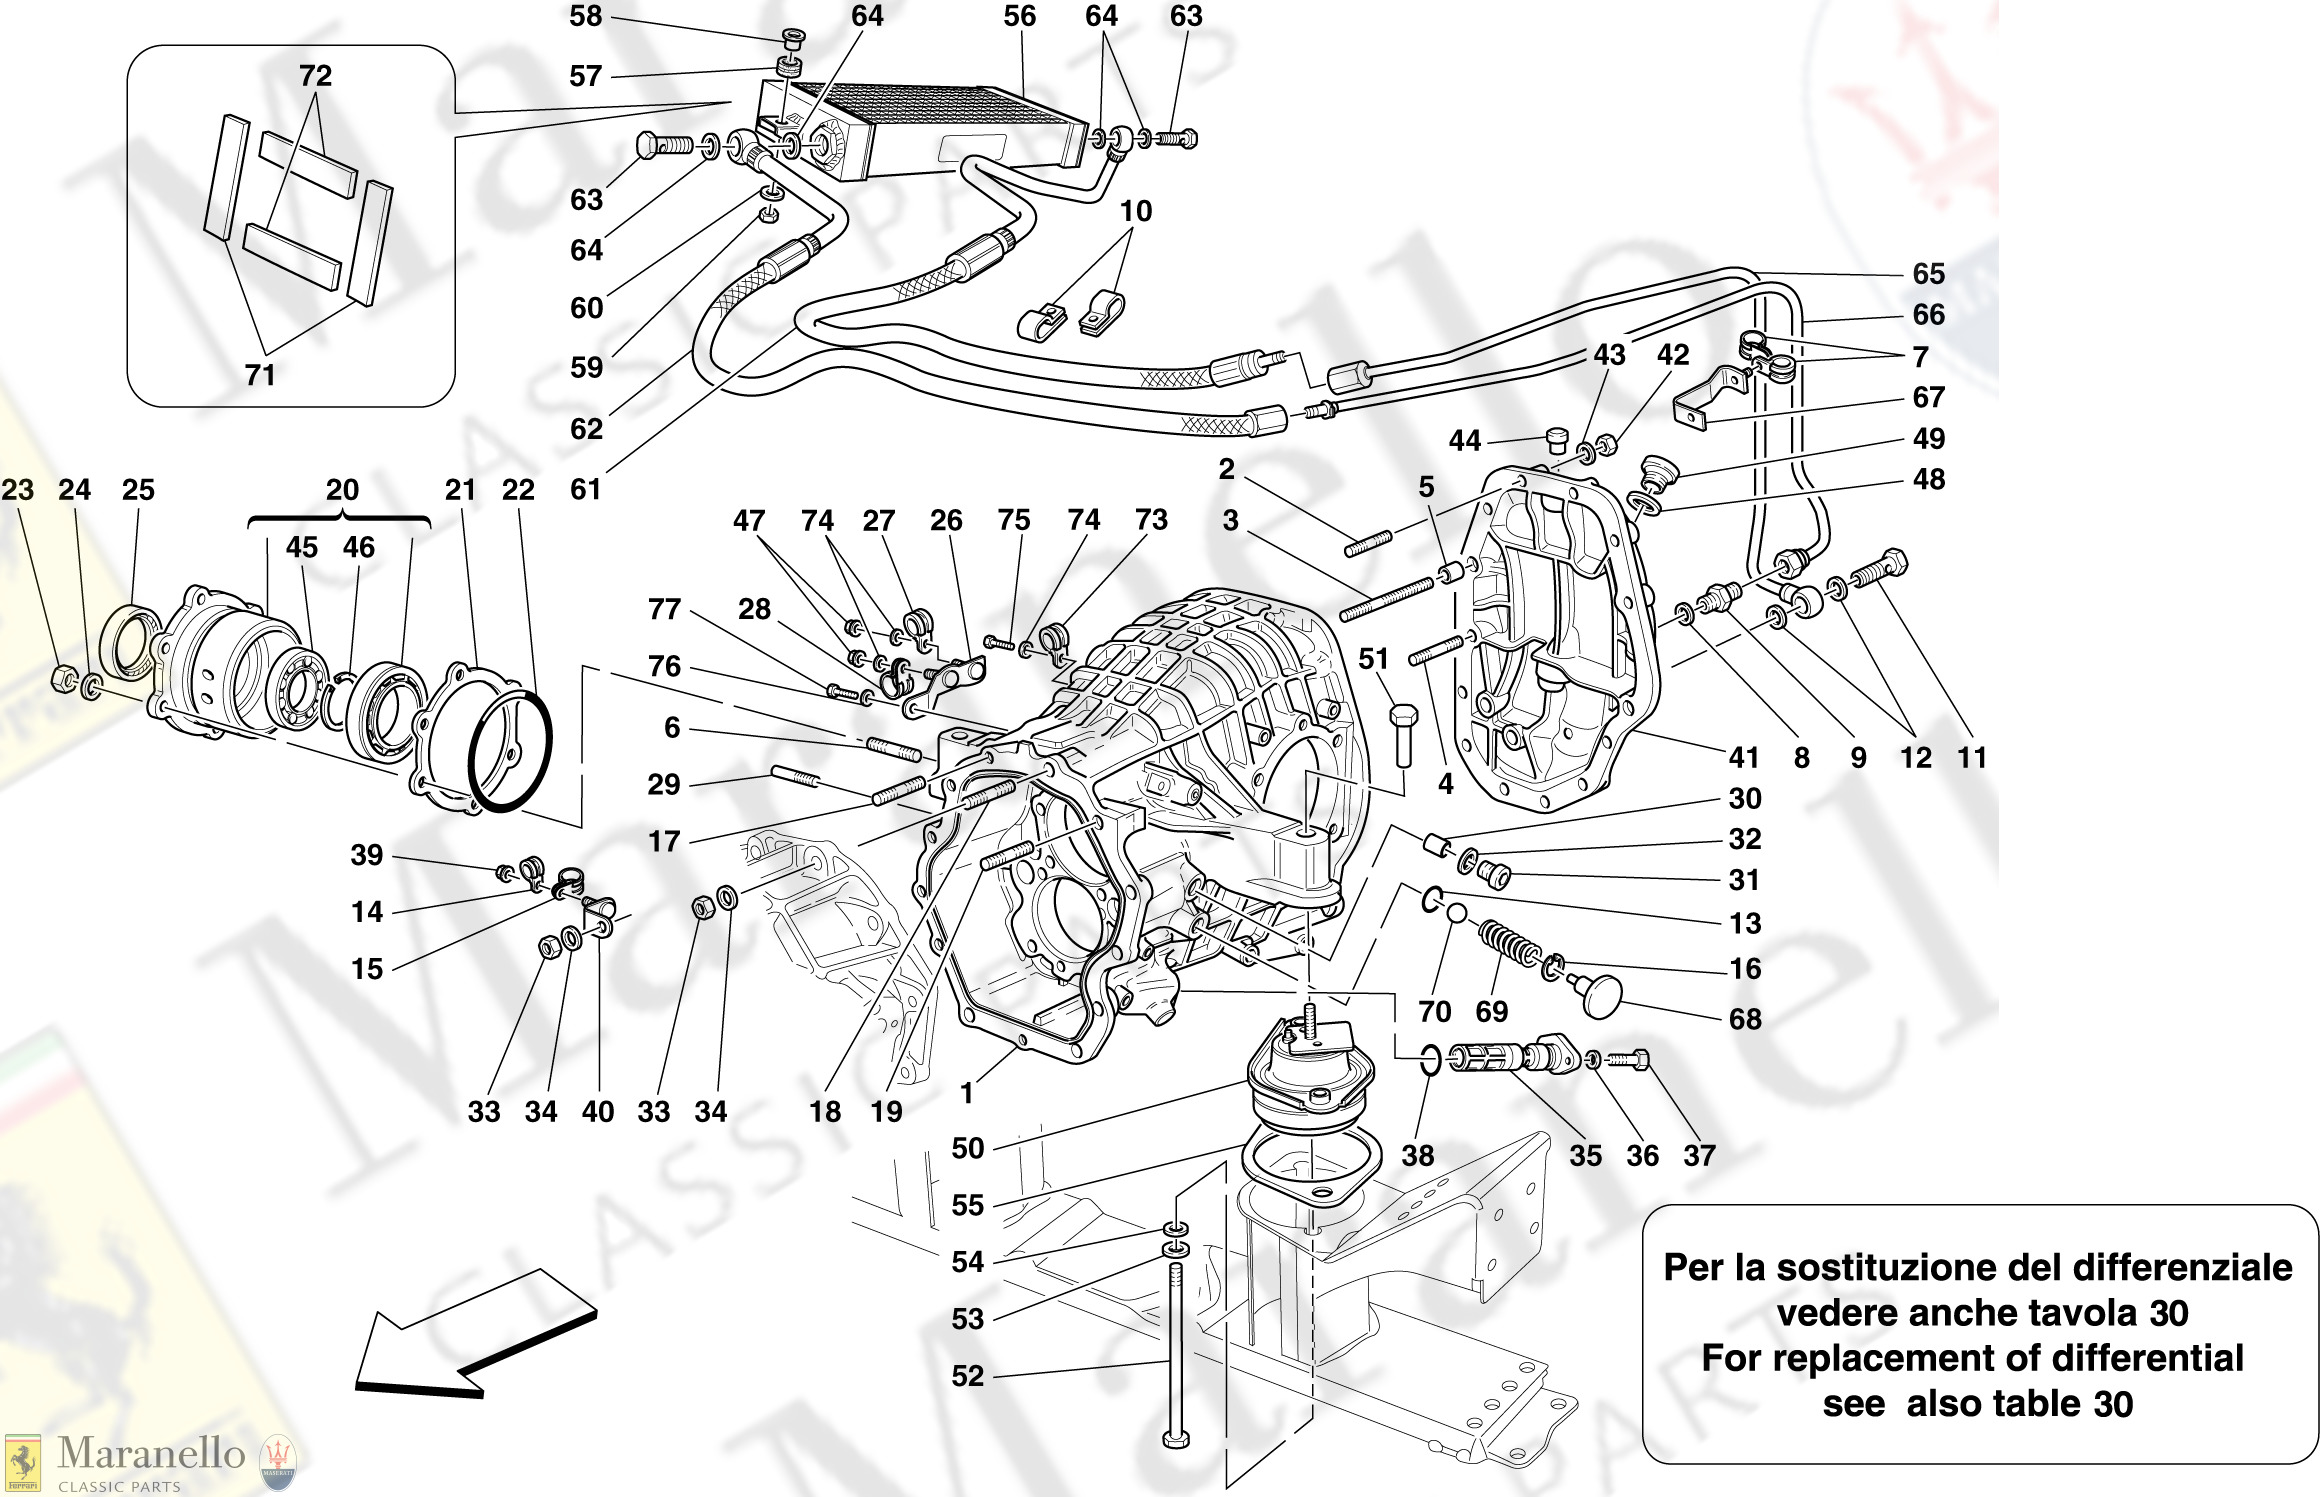 025 - Differential Case And Gearbox Cooling Radiator